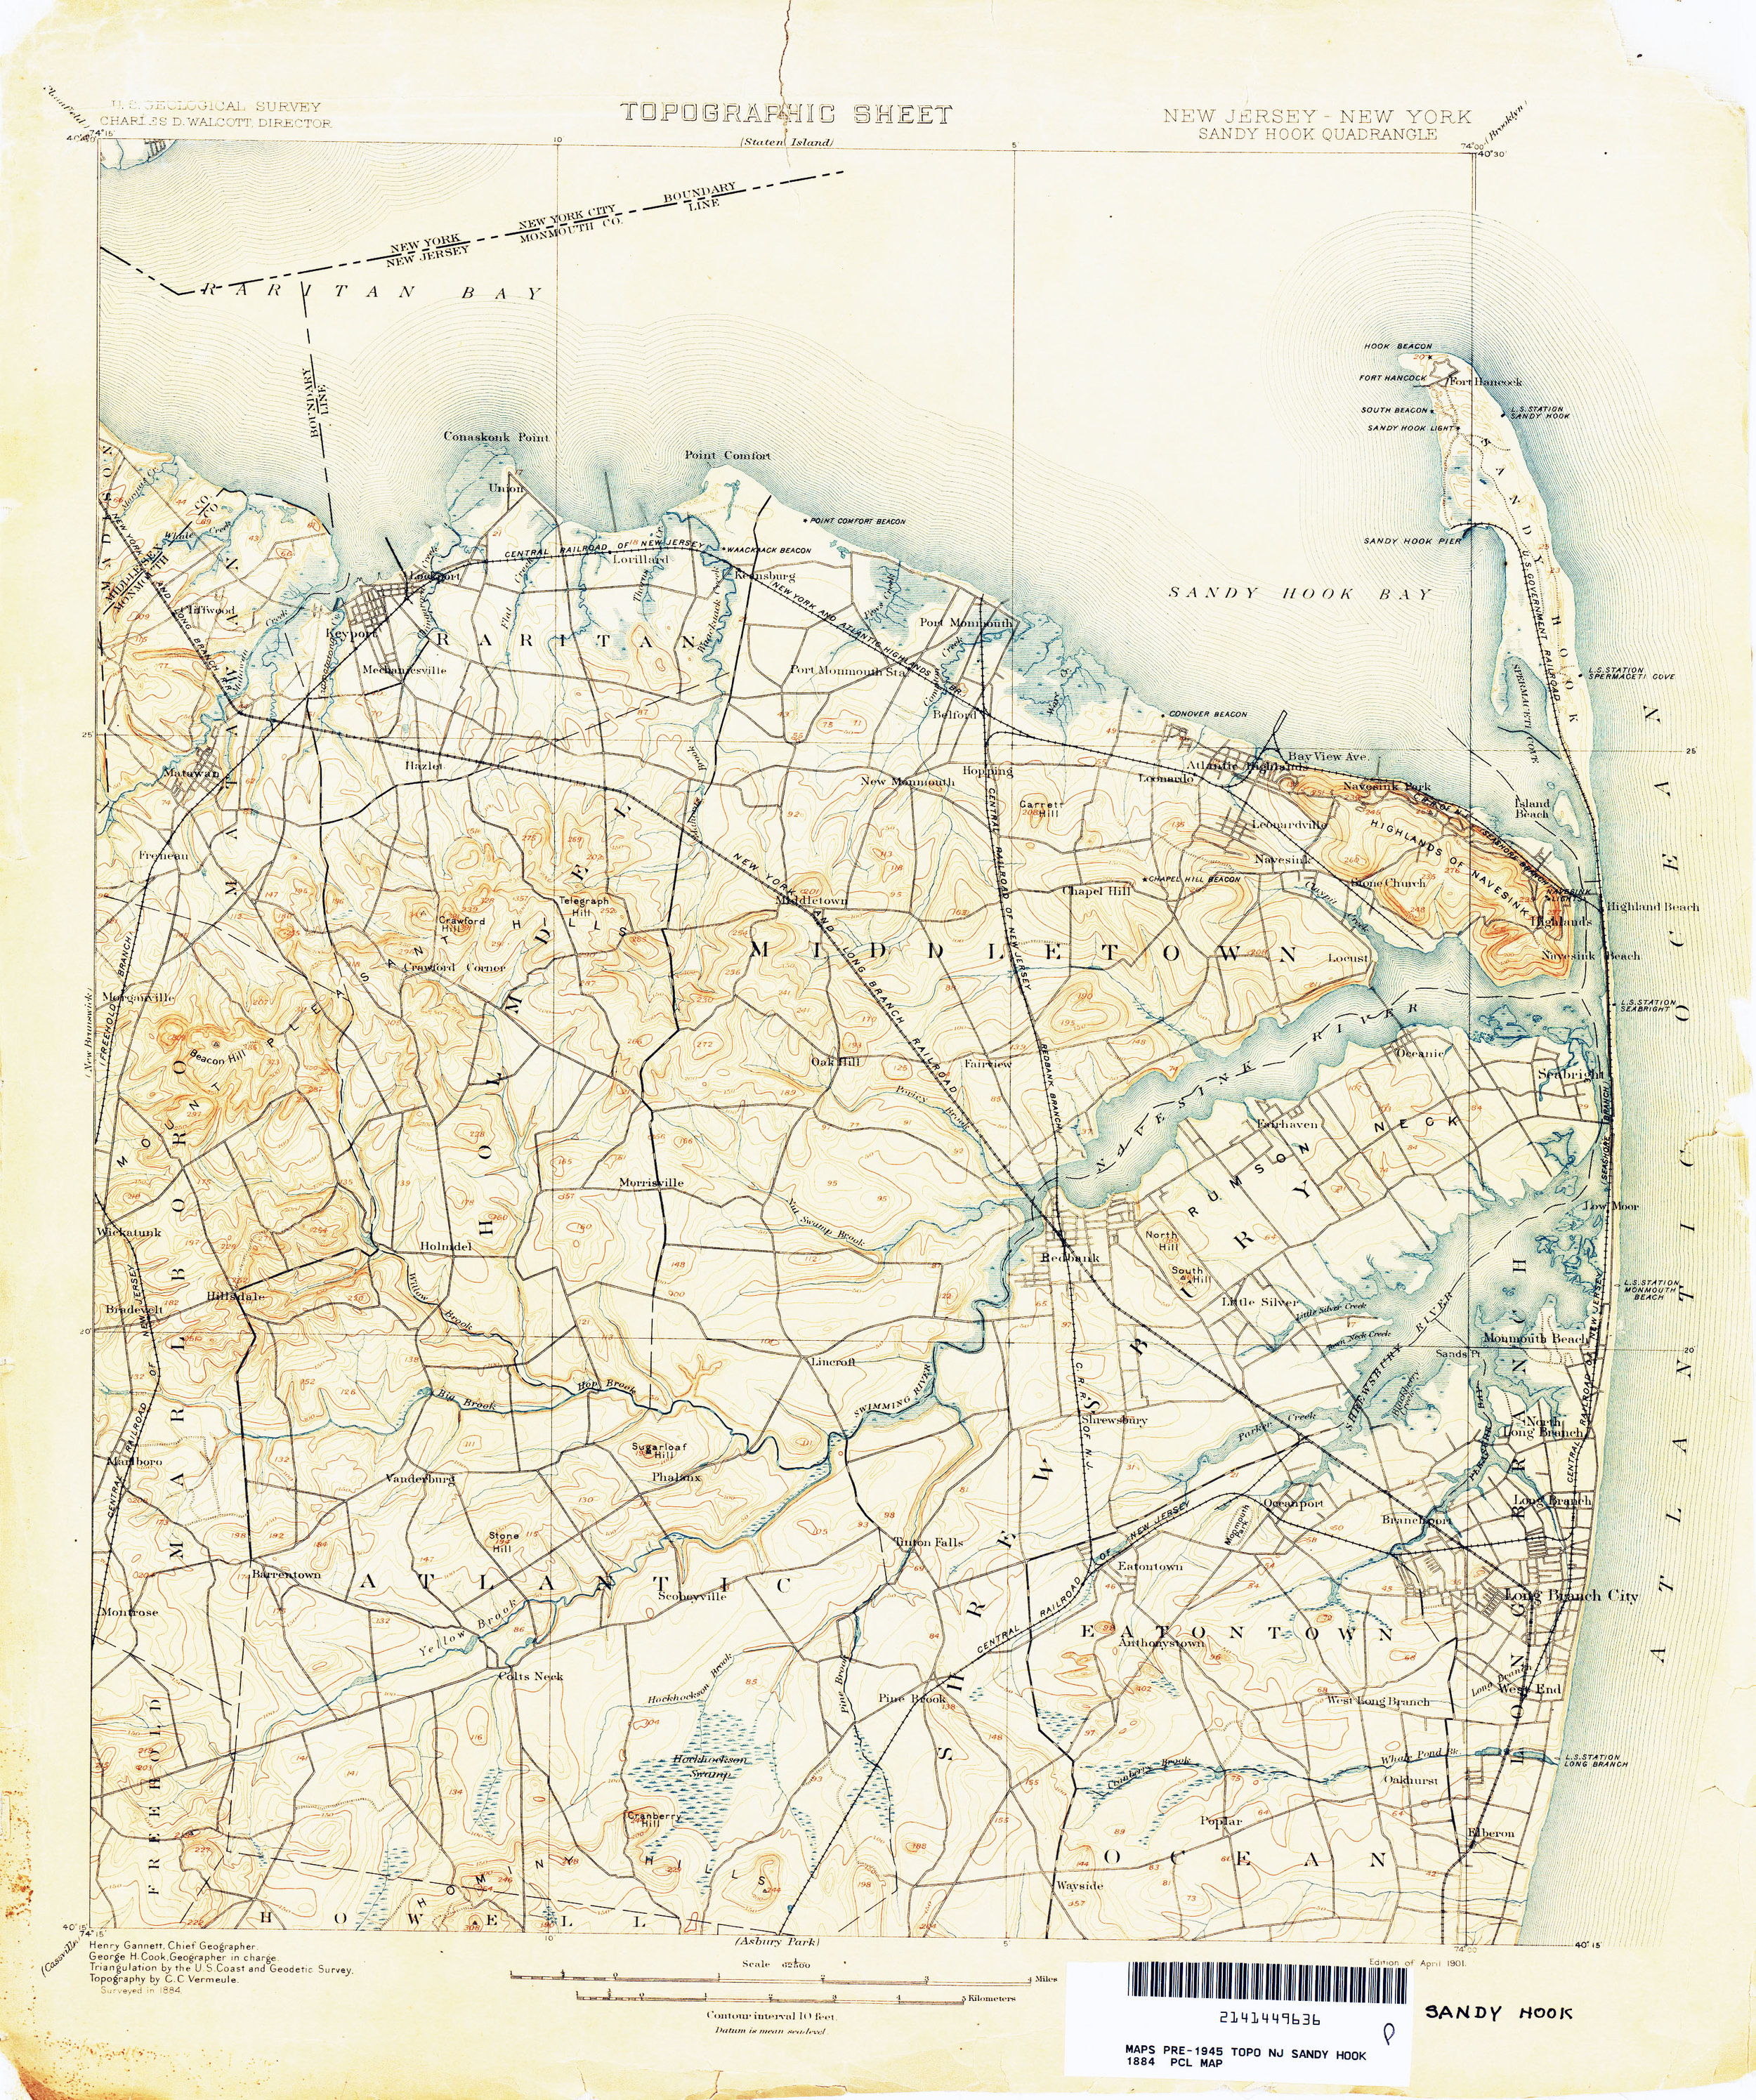 1884 Sandy Hook Bay Topographic Map